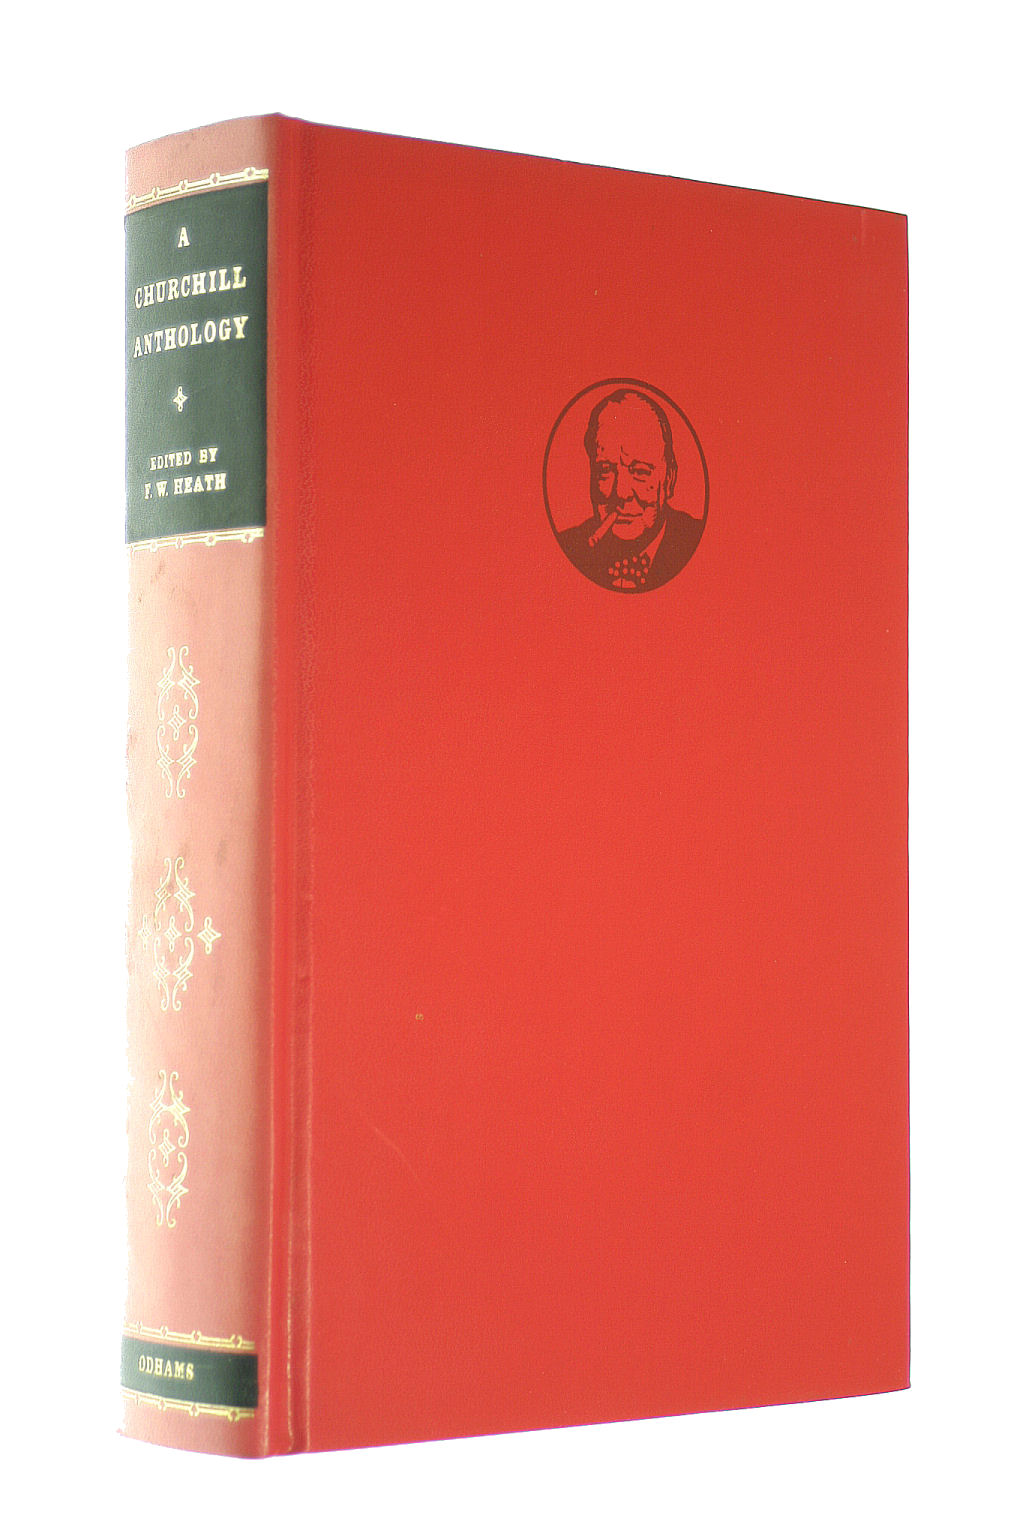 Image for A Churchill Anthology: Selections From The Writings And Speeches Of Sir Winston Churchill